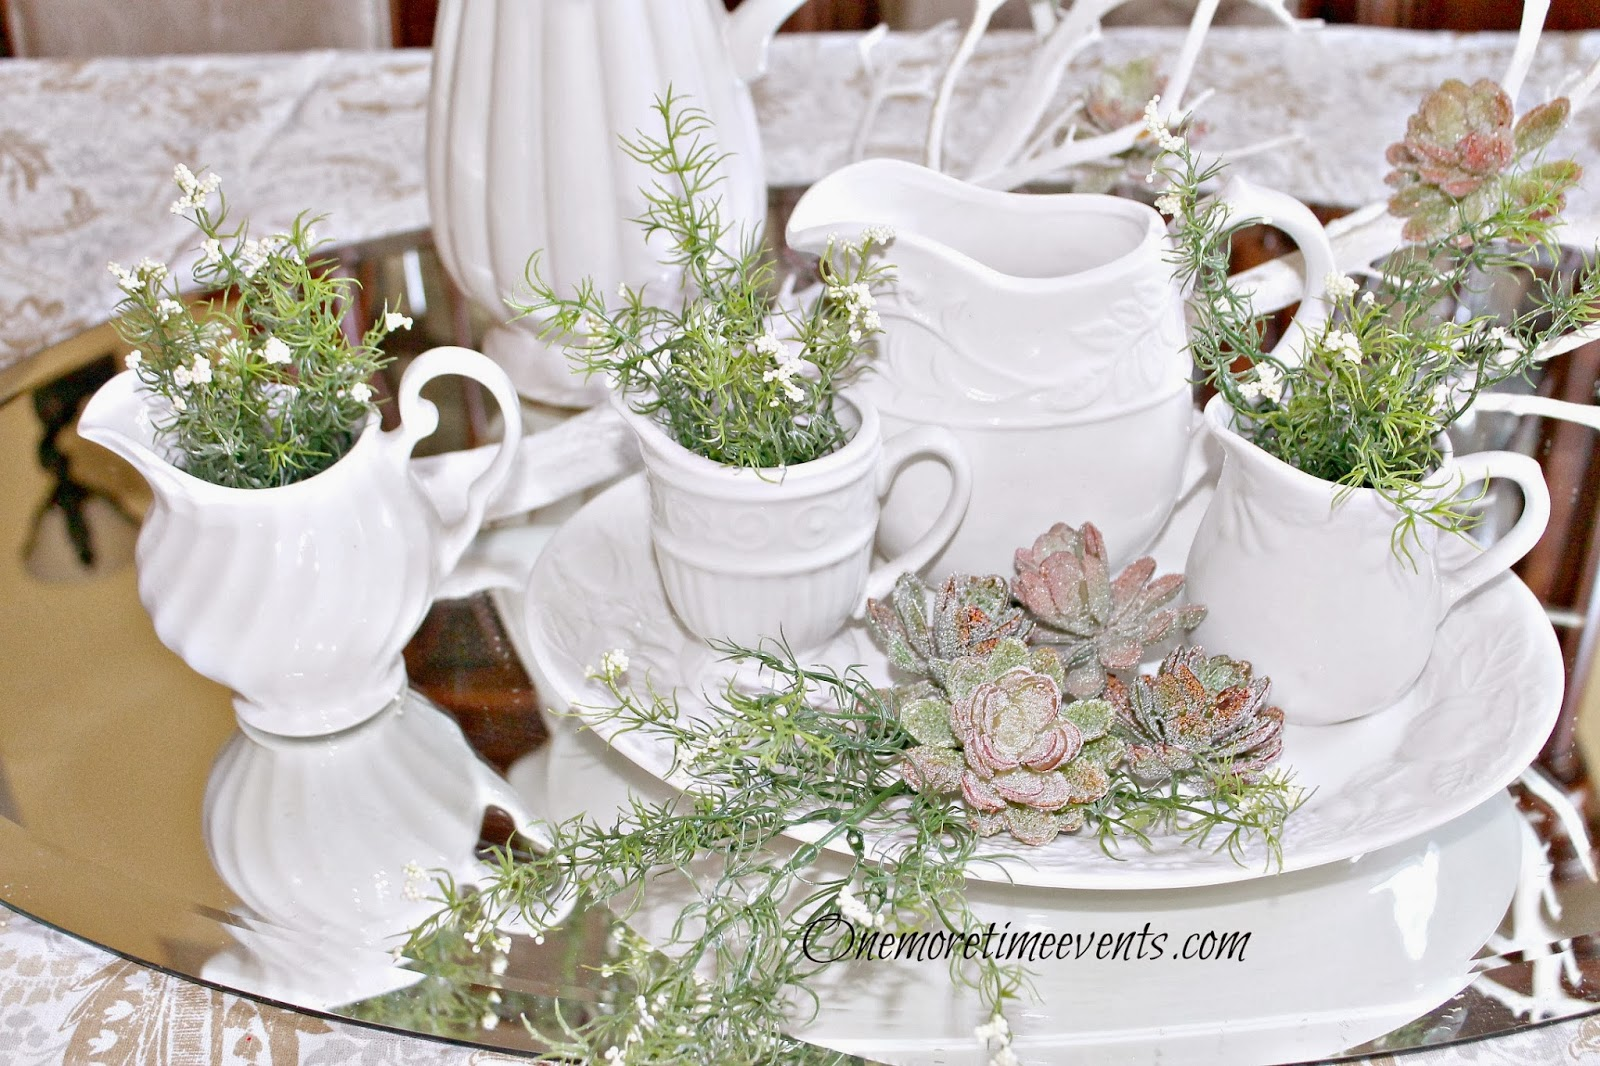 Mixing Whites and greens tablescape at One More Time Events.com